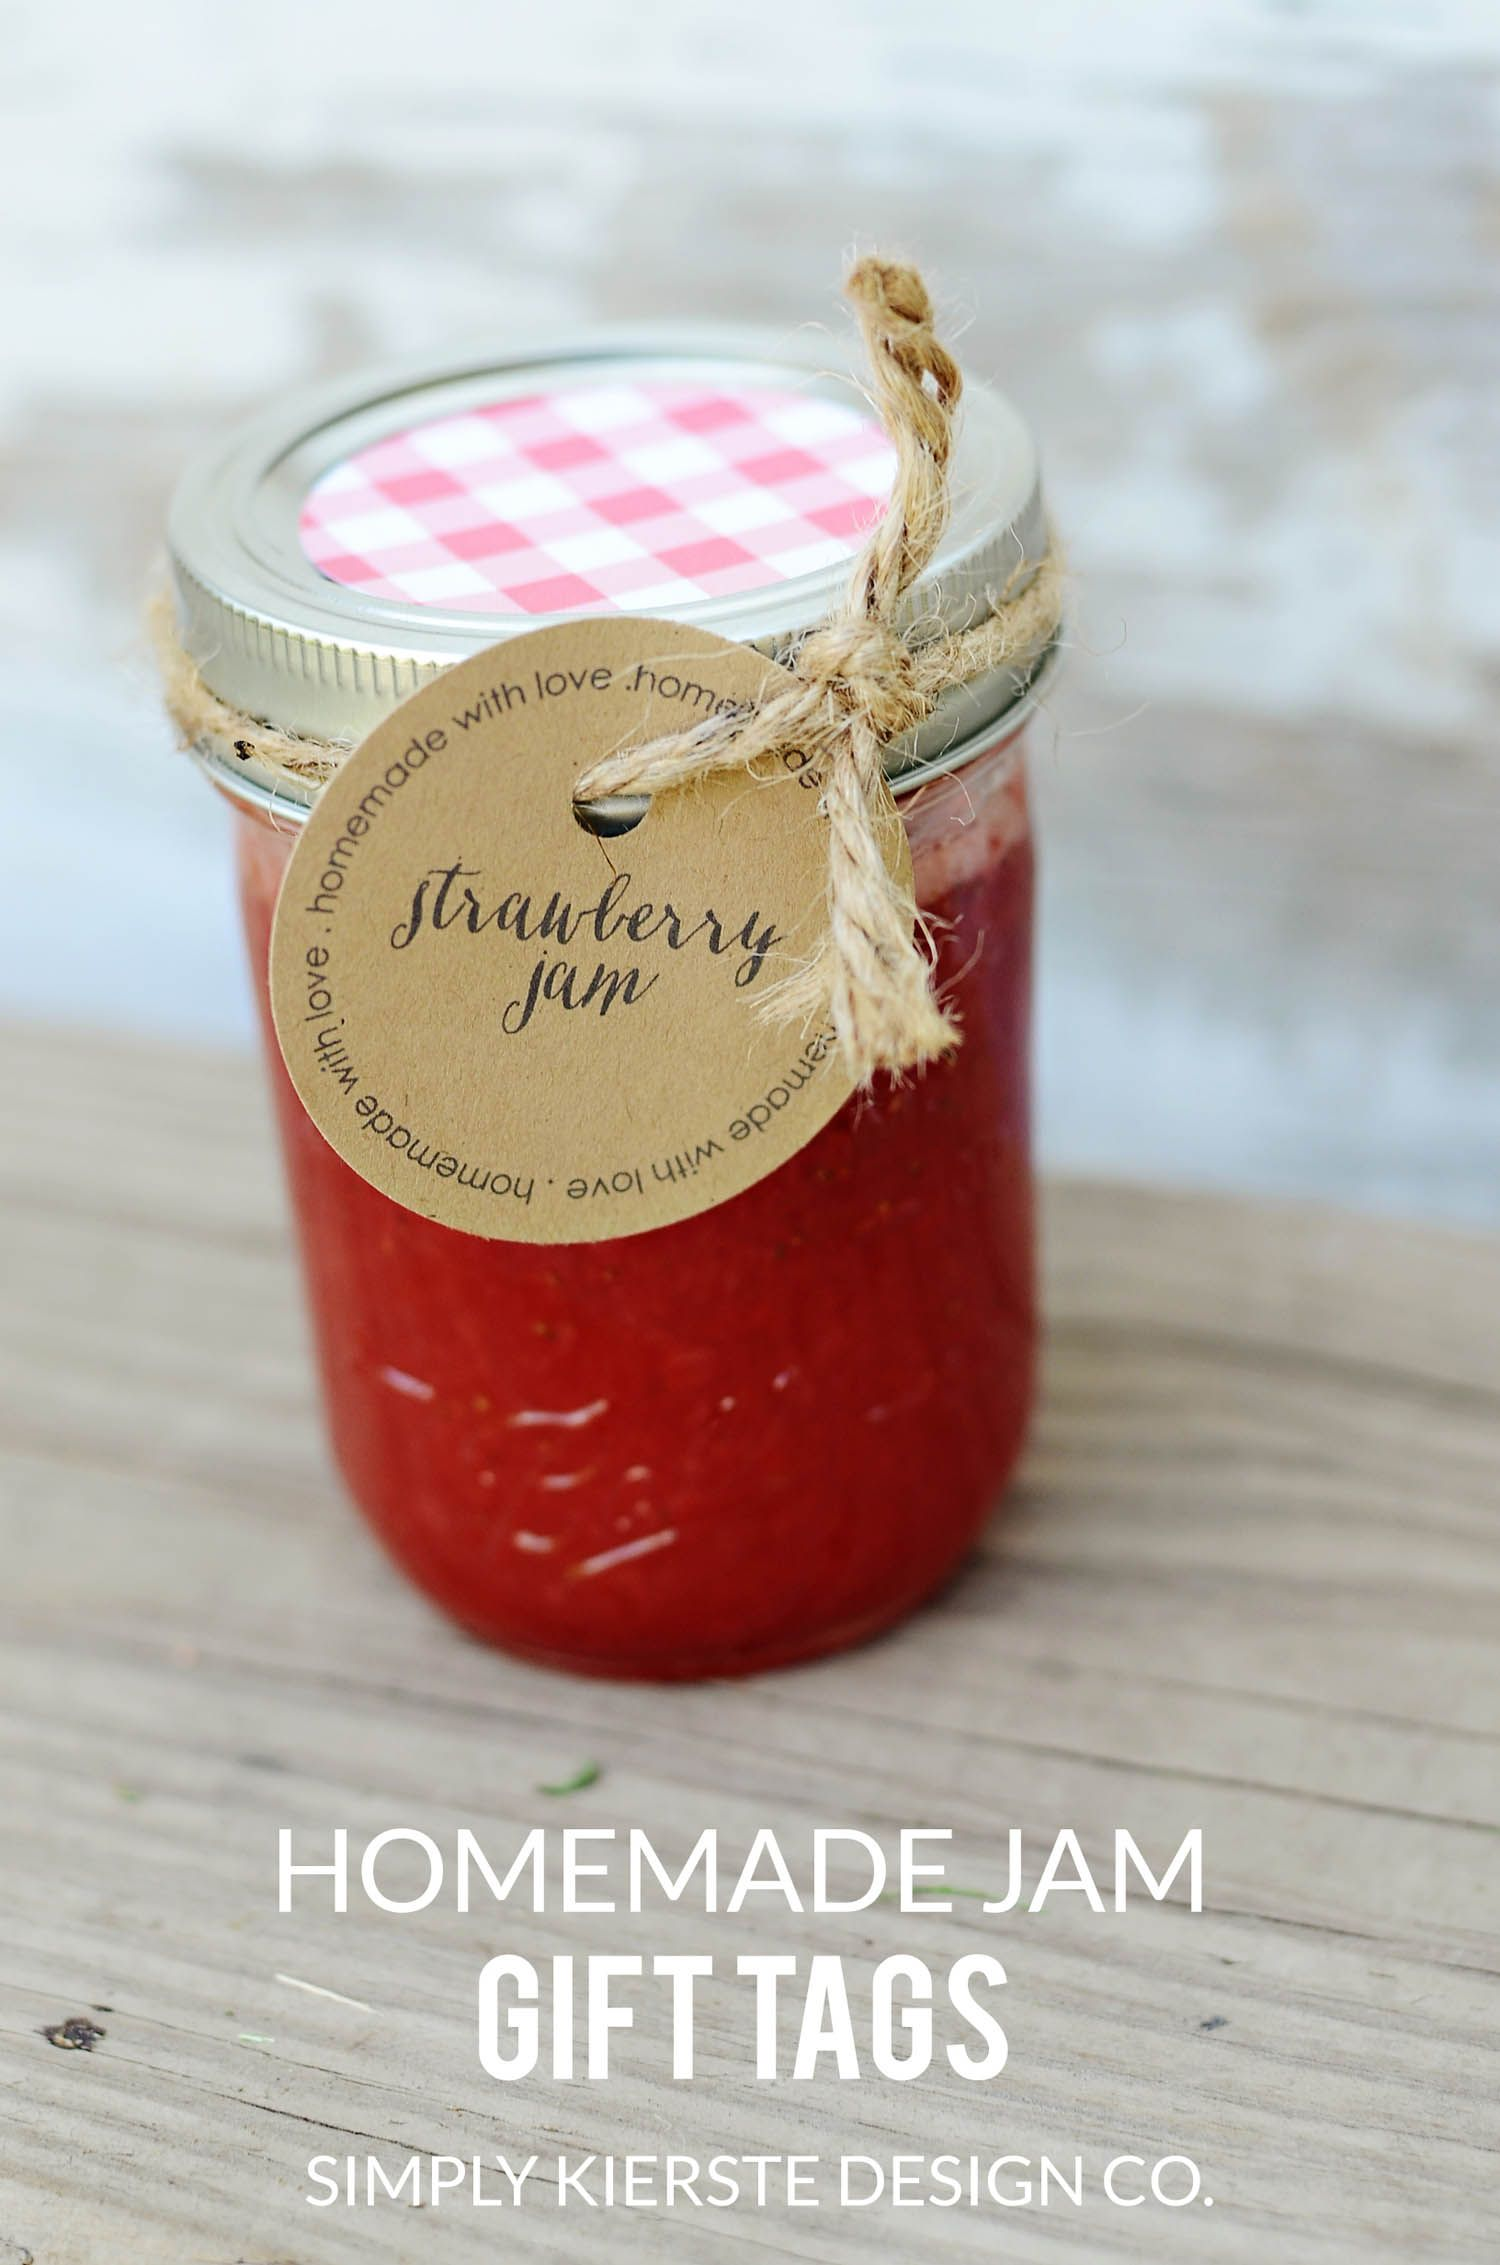 Homemade Jam Printable Labels Old Salt Farm Homemade Jam Homemade Christmas Tags Jam Gift